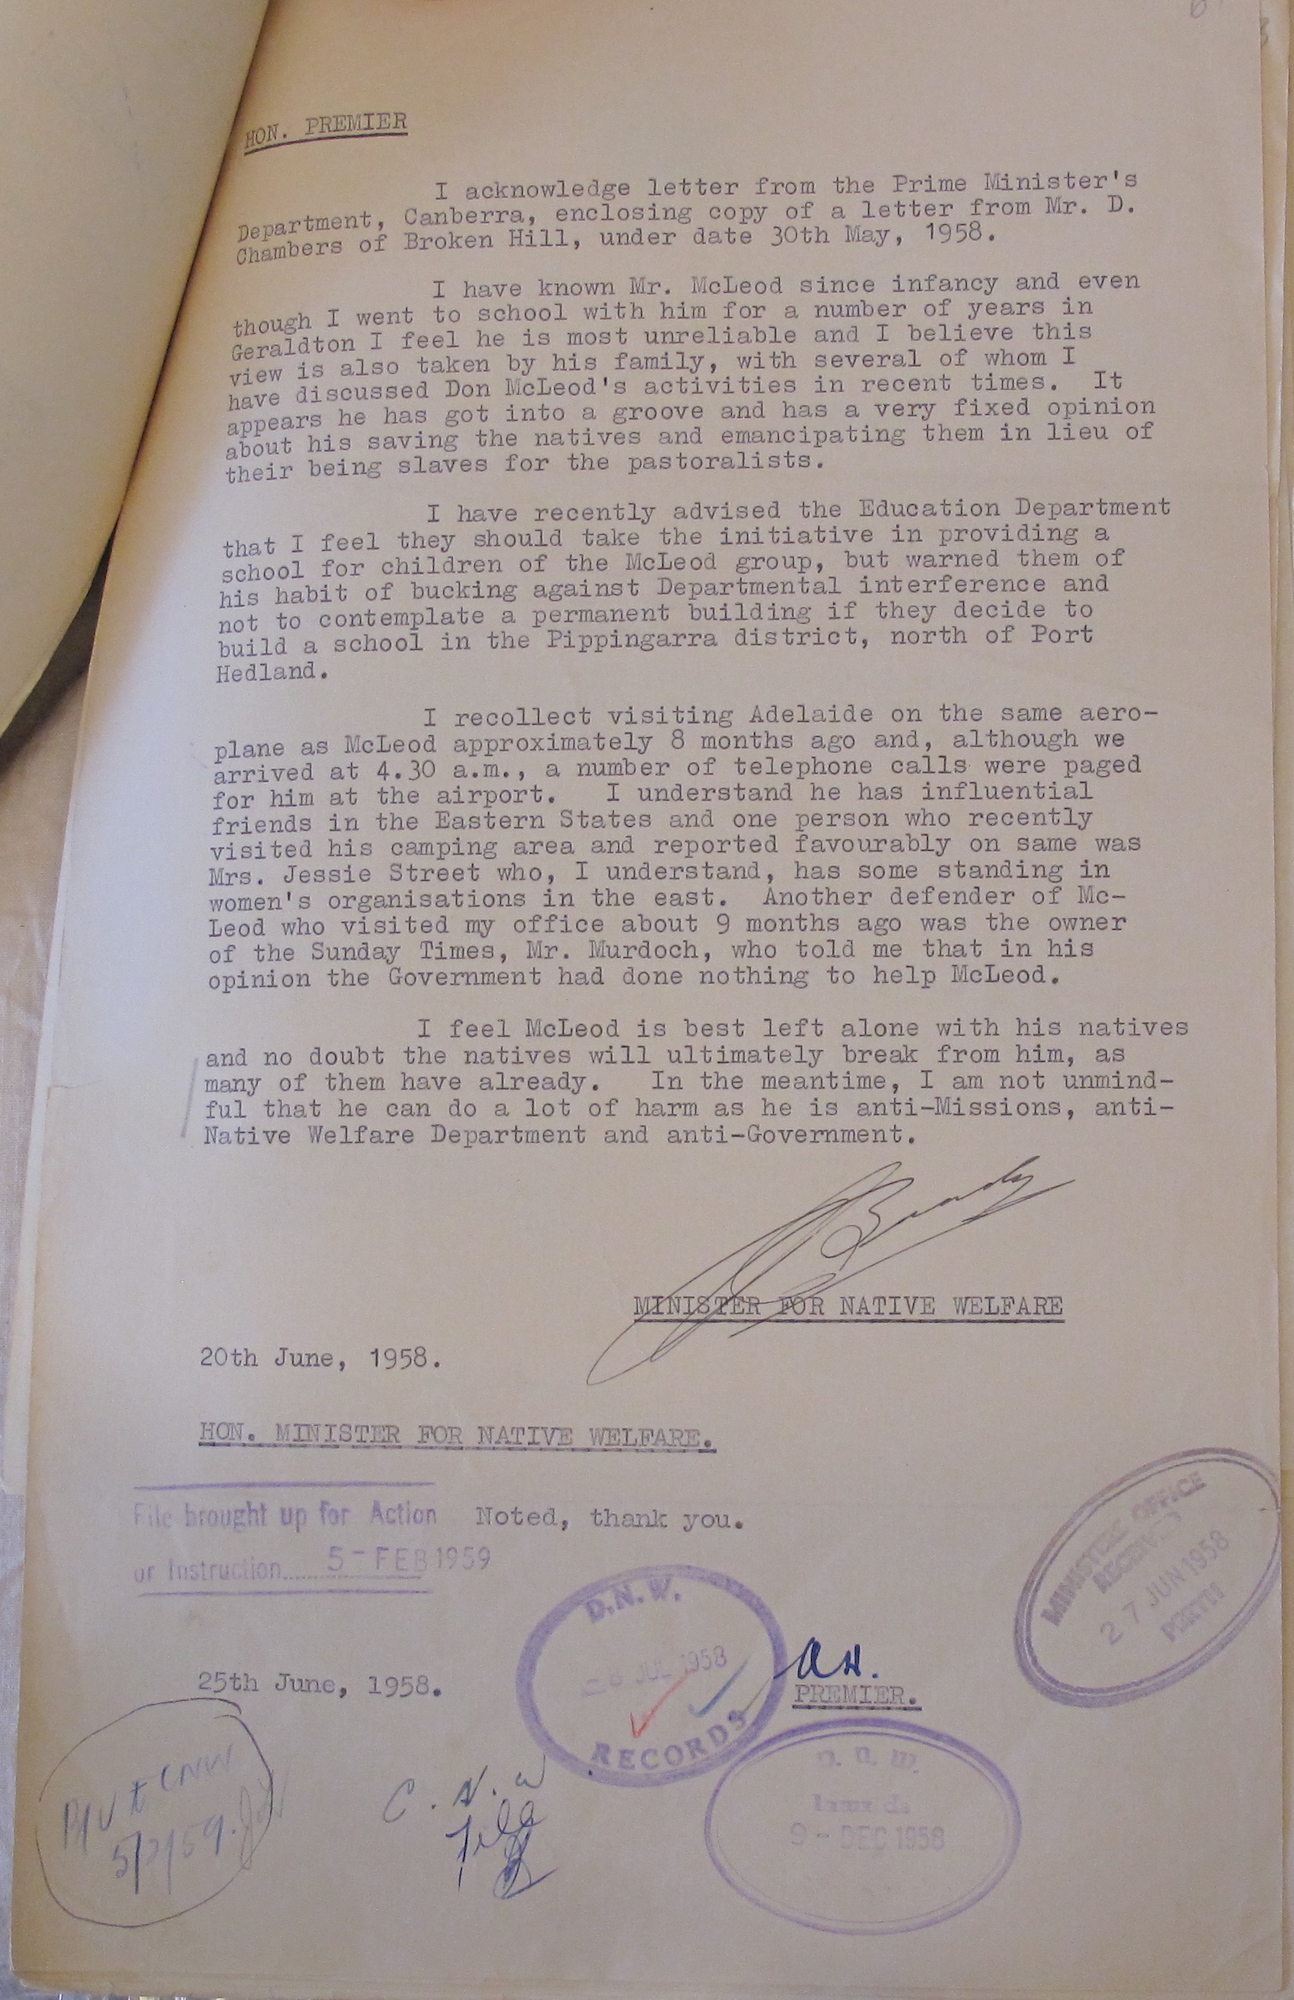 Minister for Native Welfare Brady to Premier Hawke, 20 June 1958